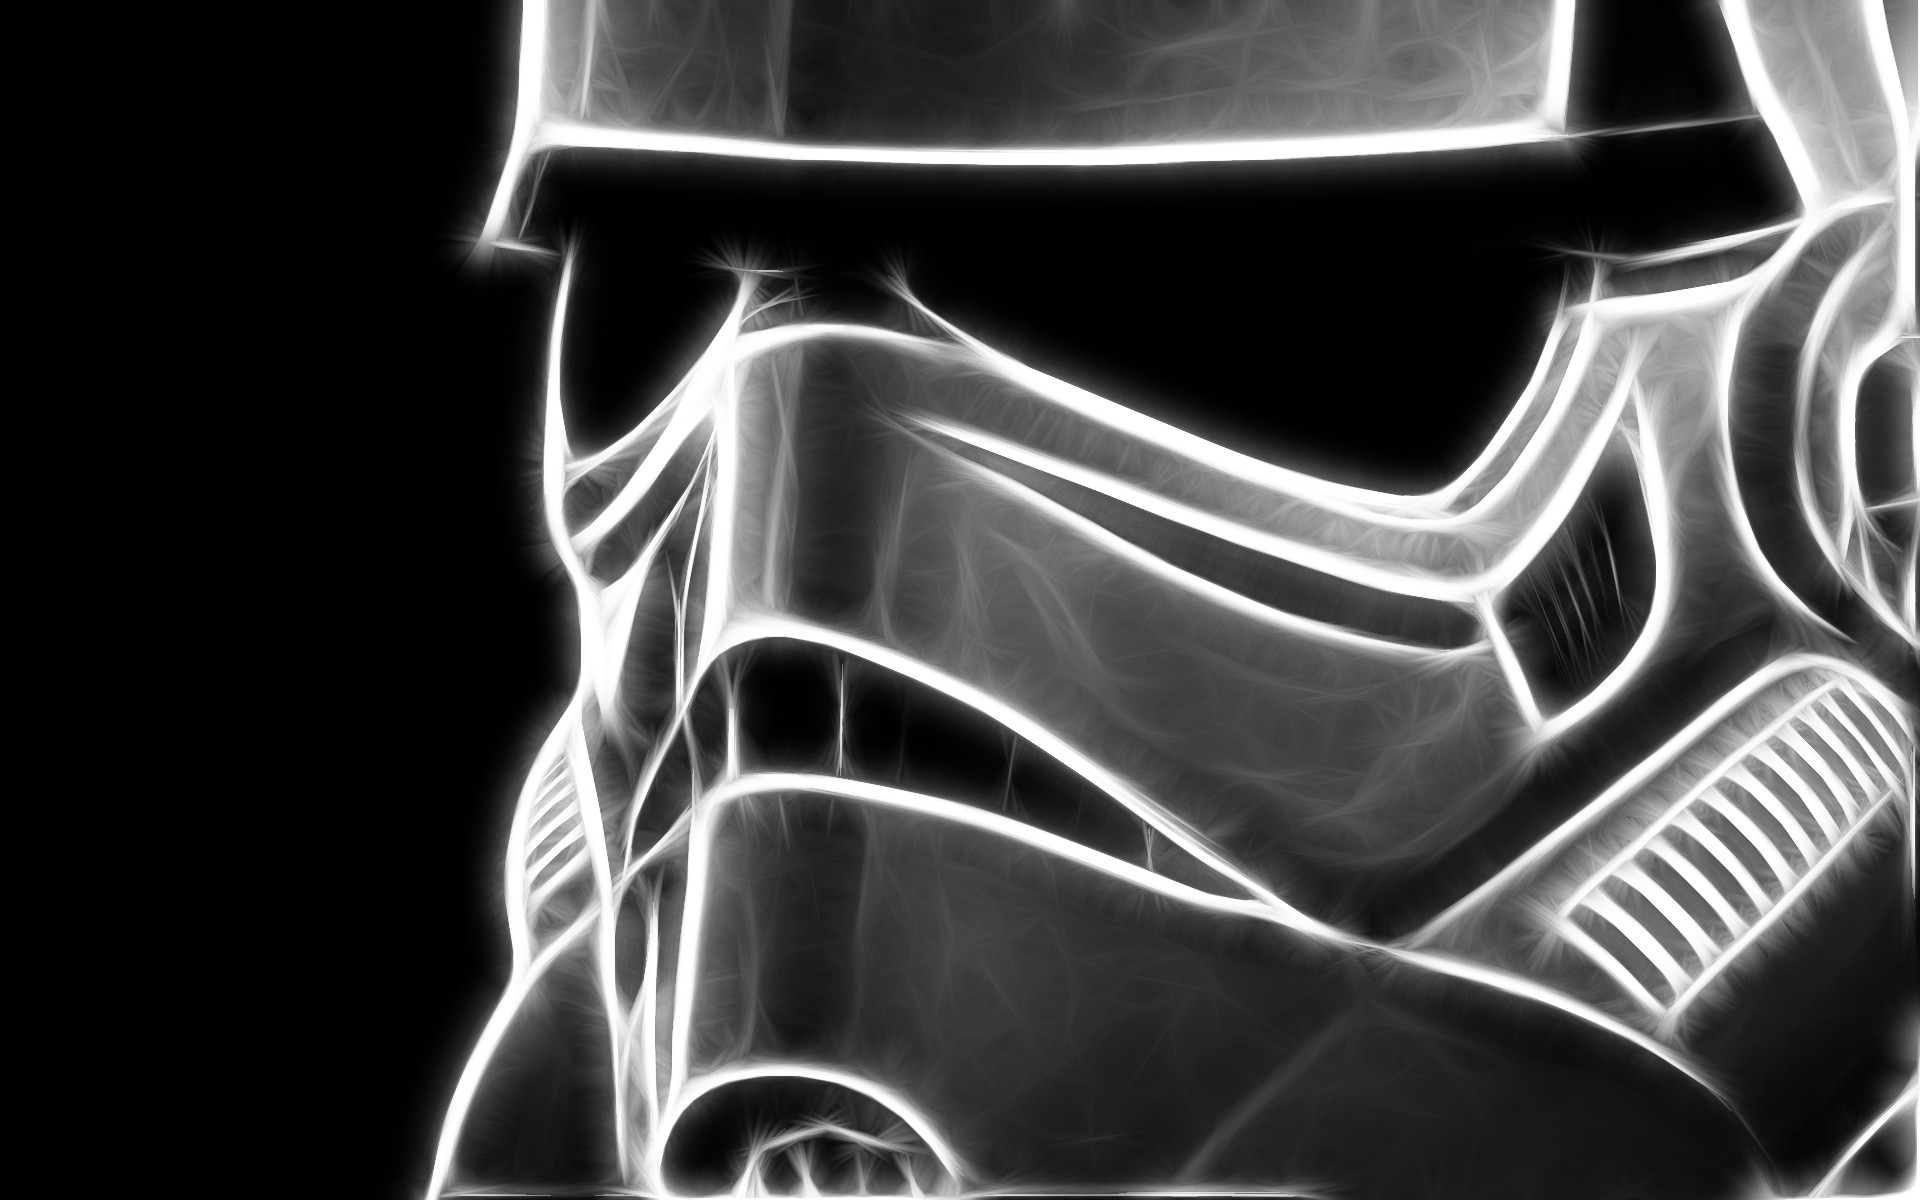 Star Wars Stormtroopers Mask Wallpapers HD